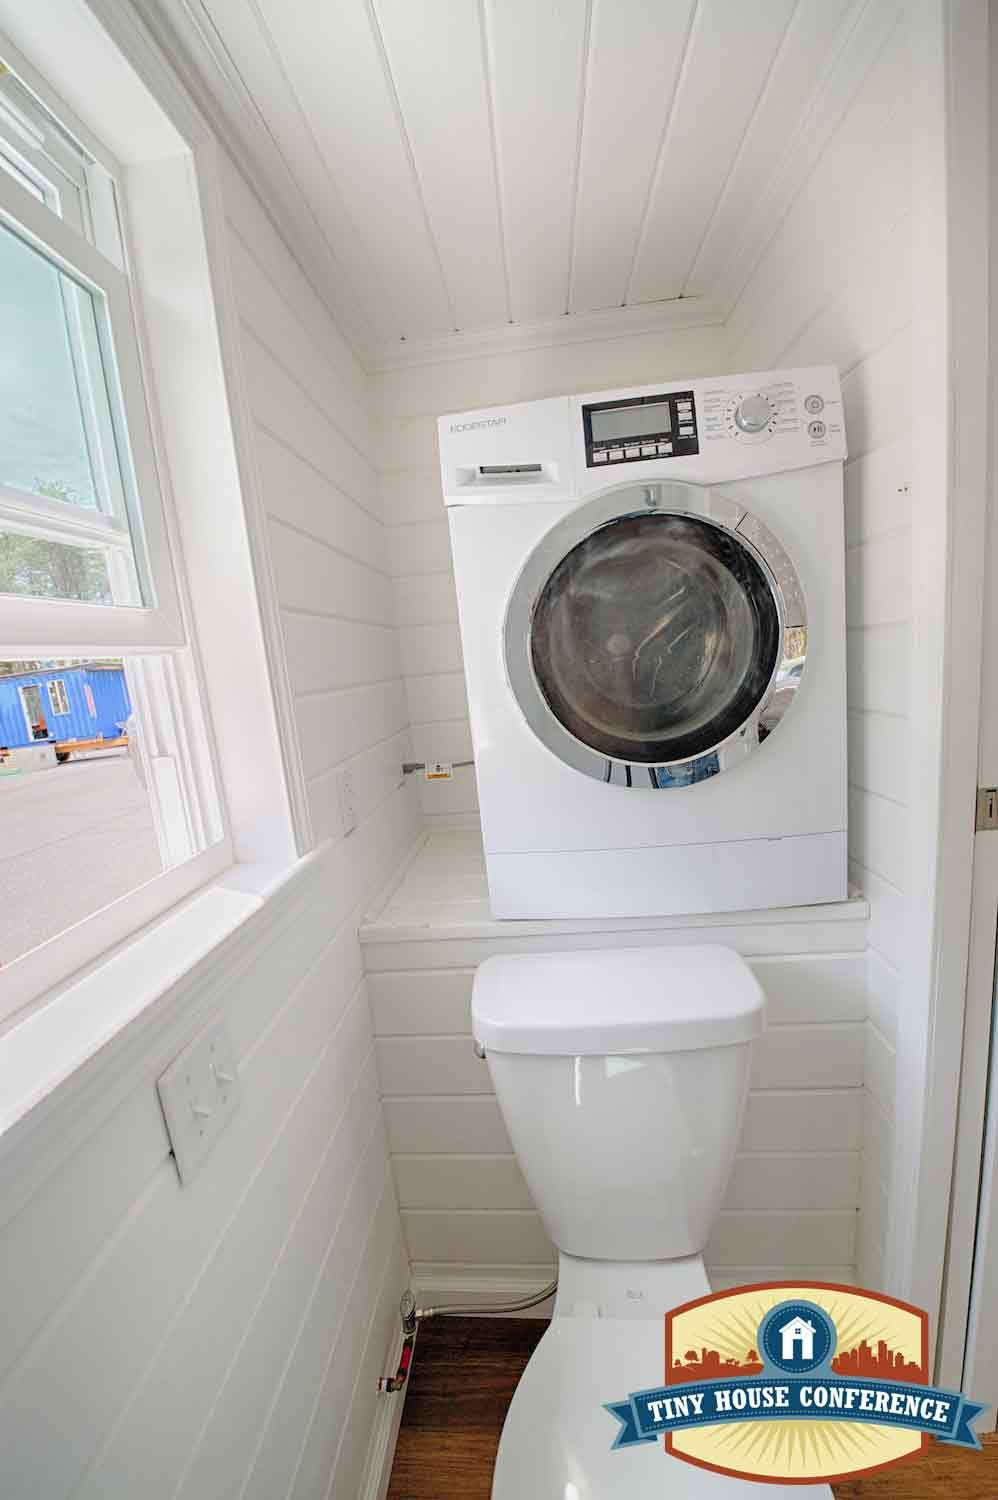 A Ventless Washer Dryer Combo In A Tiny House Bathroom At